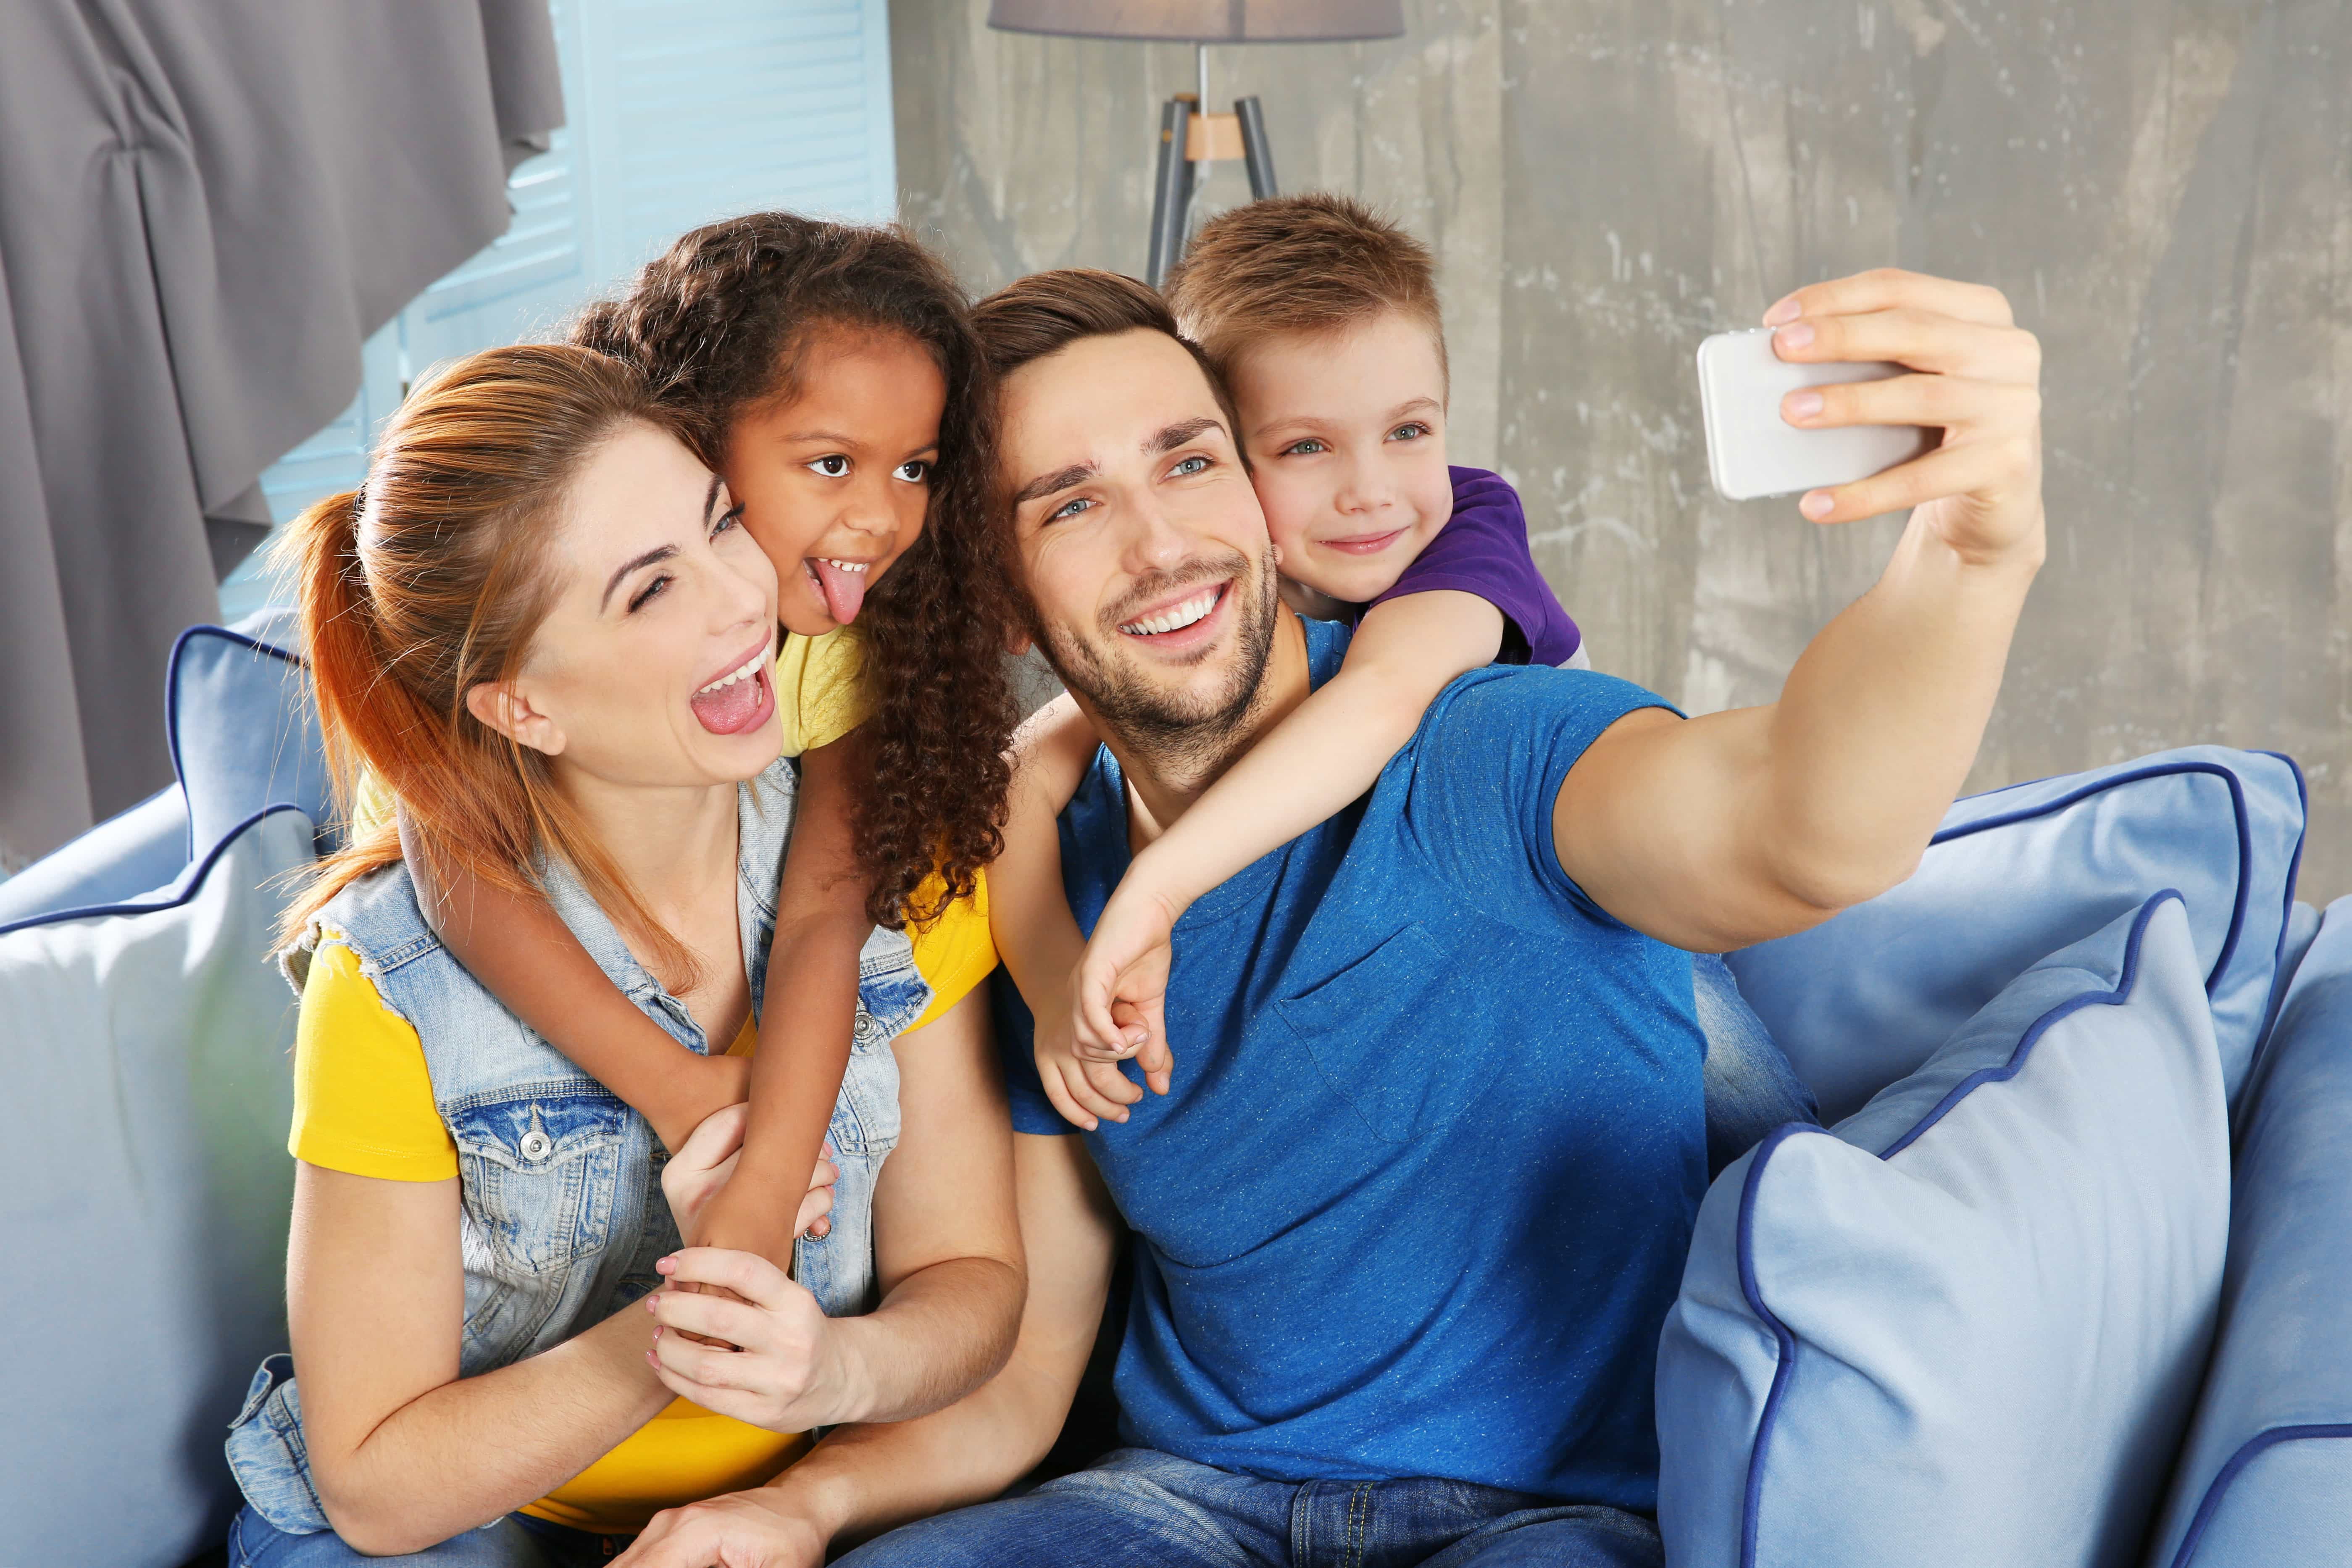 Atlanta Family Counseling and Parenting Techniques